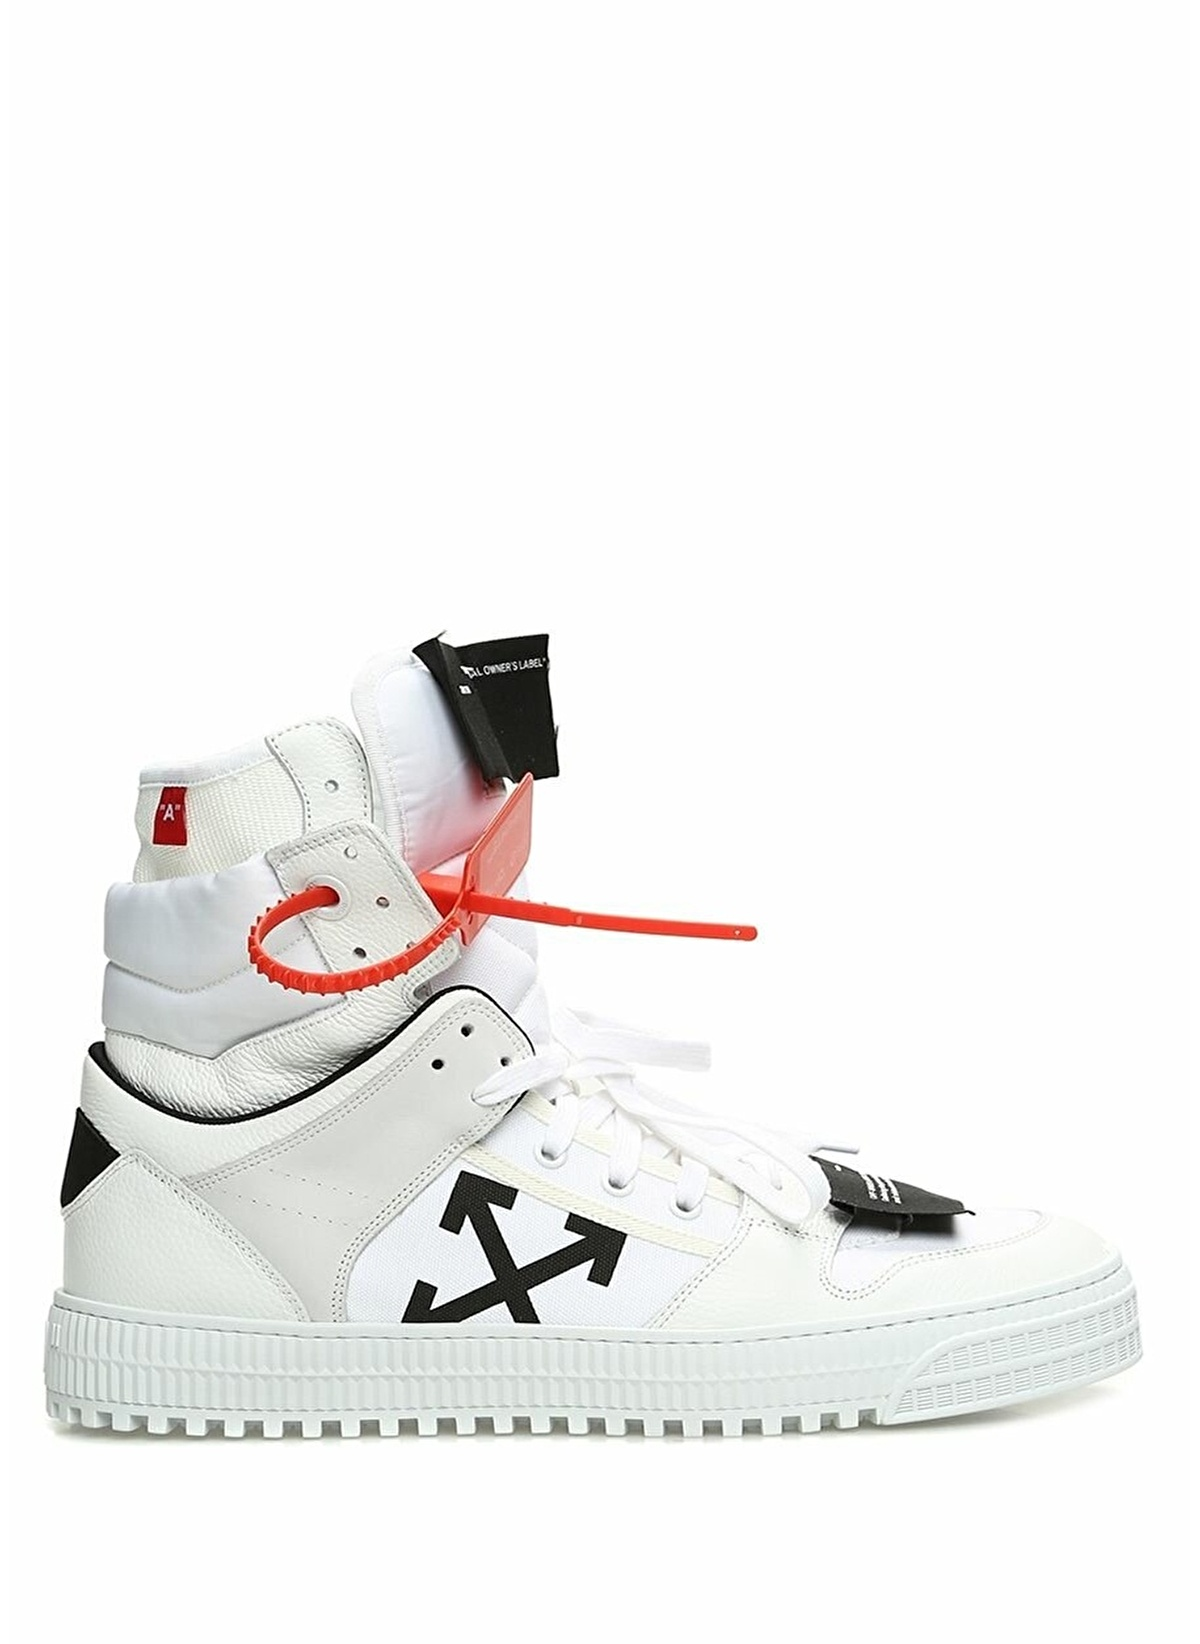 Off-white Sneakers 101384401 E Sneakers – 4649.0 TL